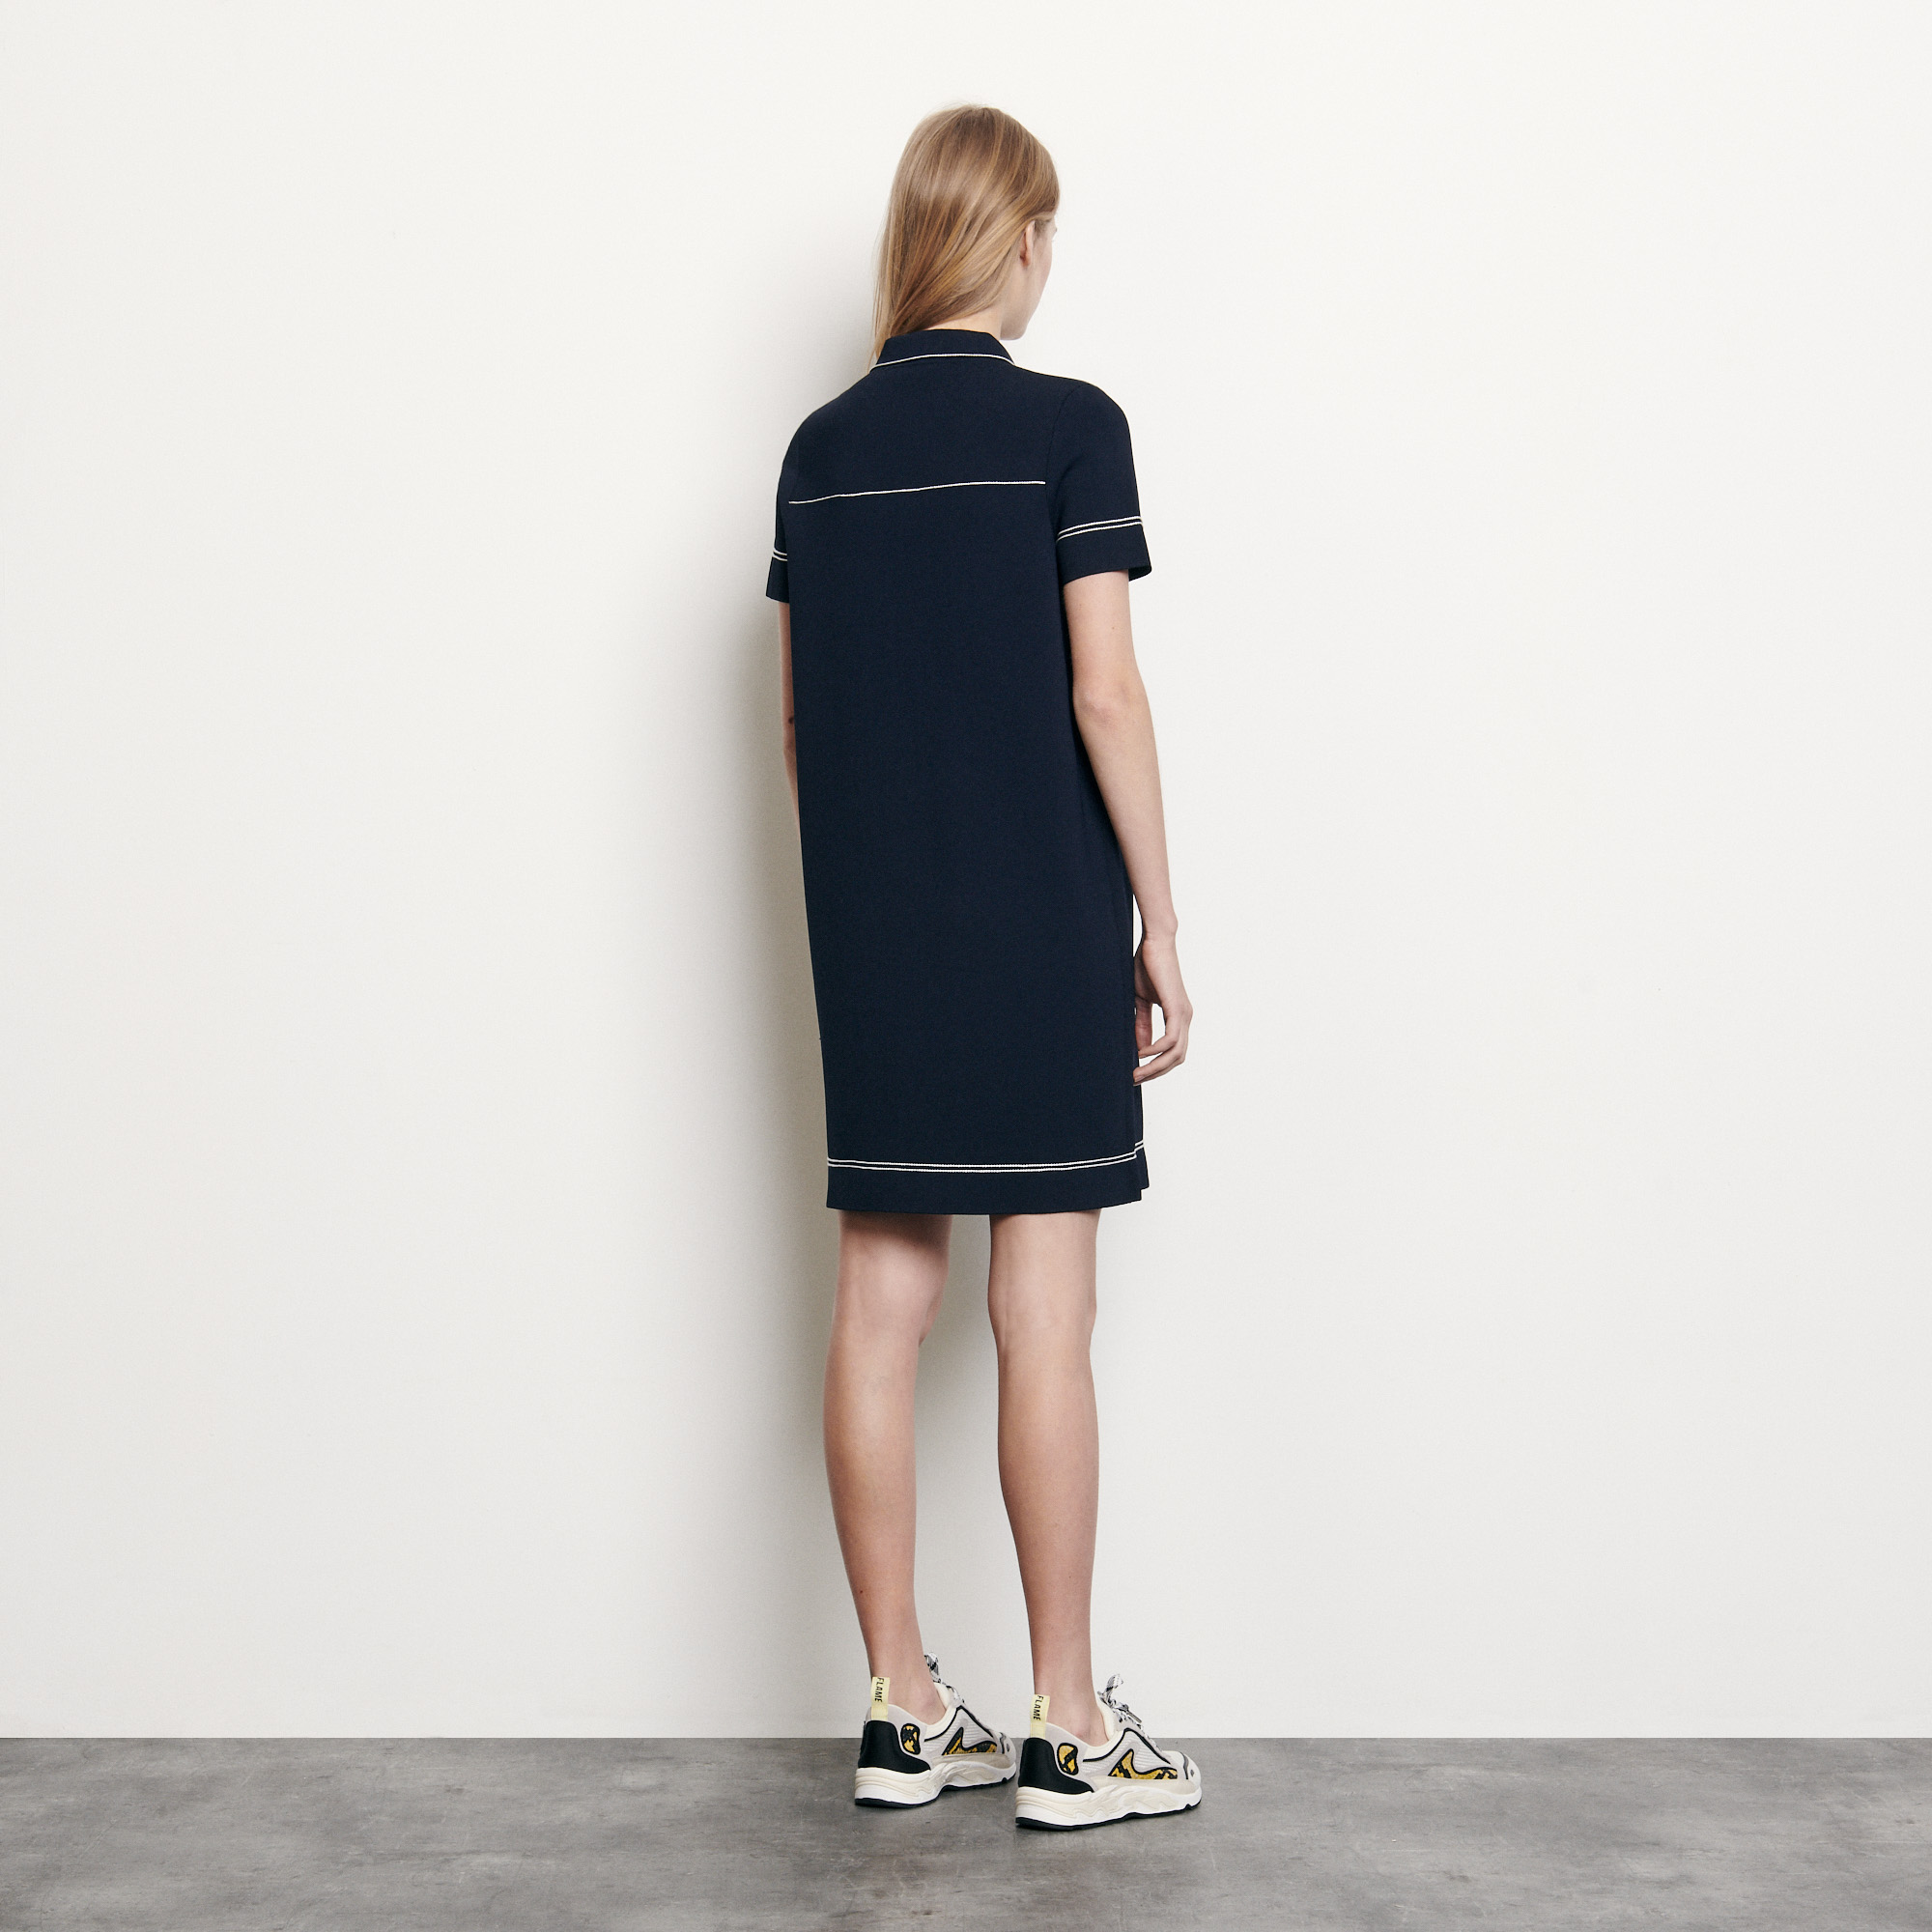 Knit dress with contrasting topstitching - Navy